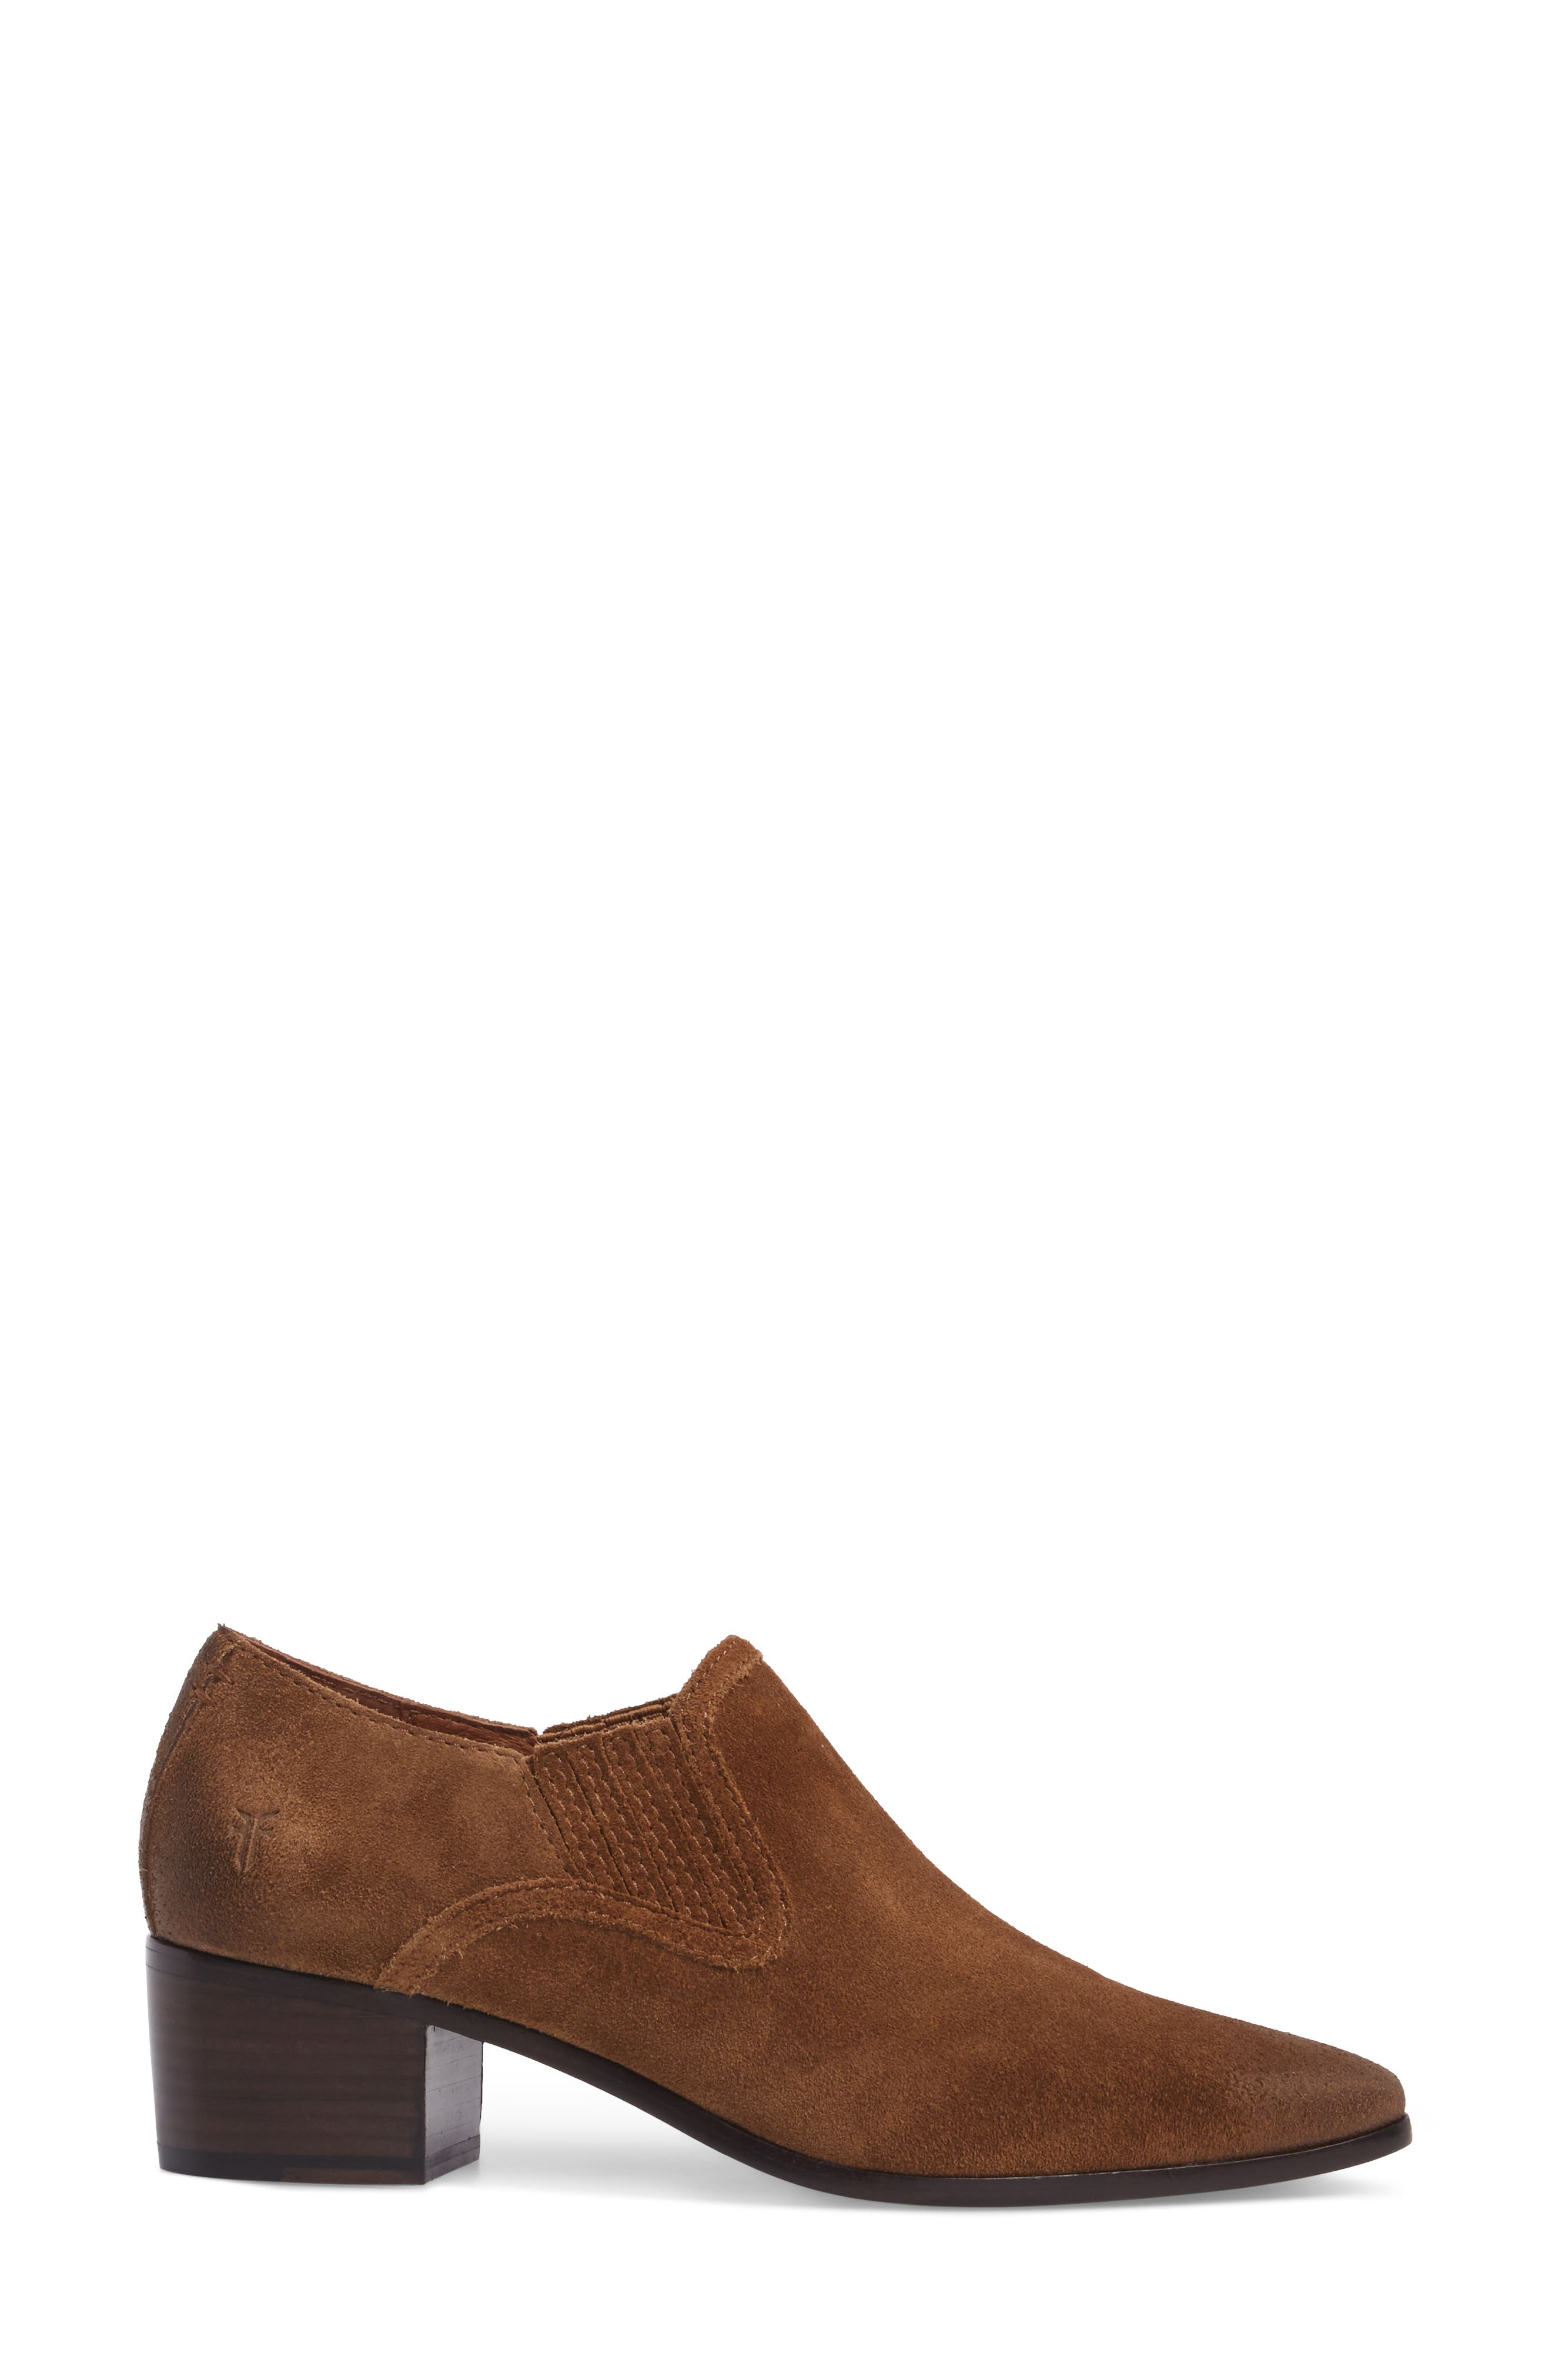 Eleanor Pointy Toe Bootie,                             Alternate thumbnail 3, color,                             Chestnut